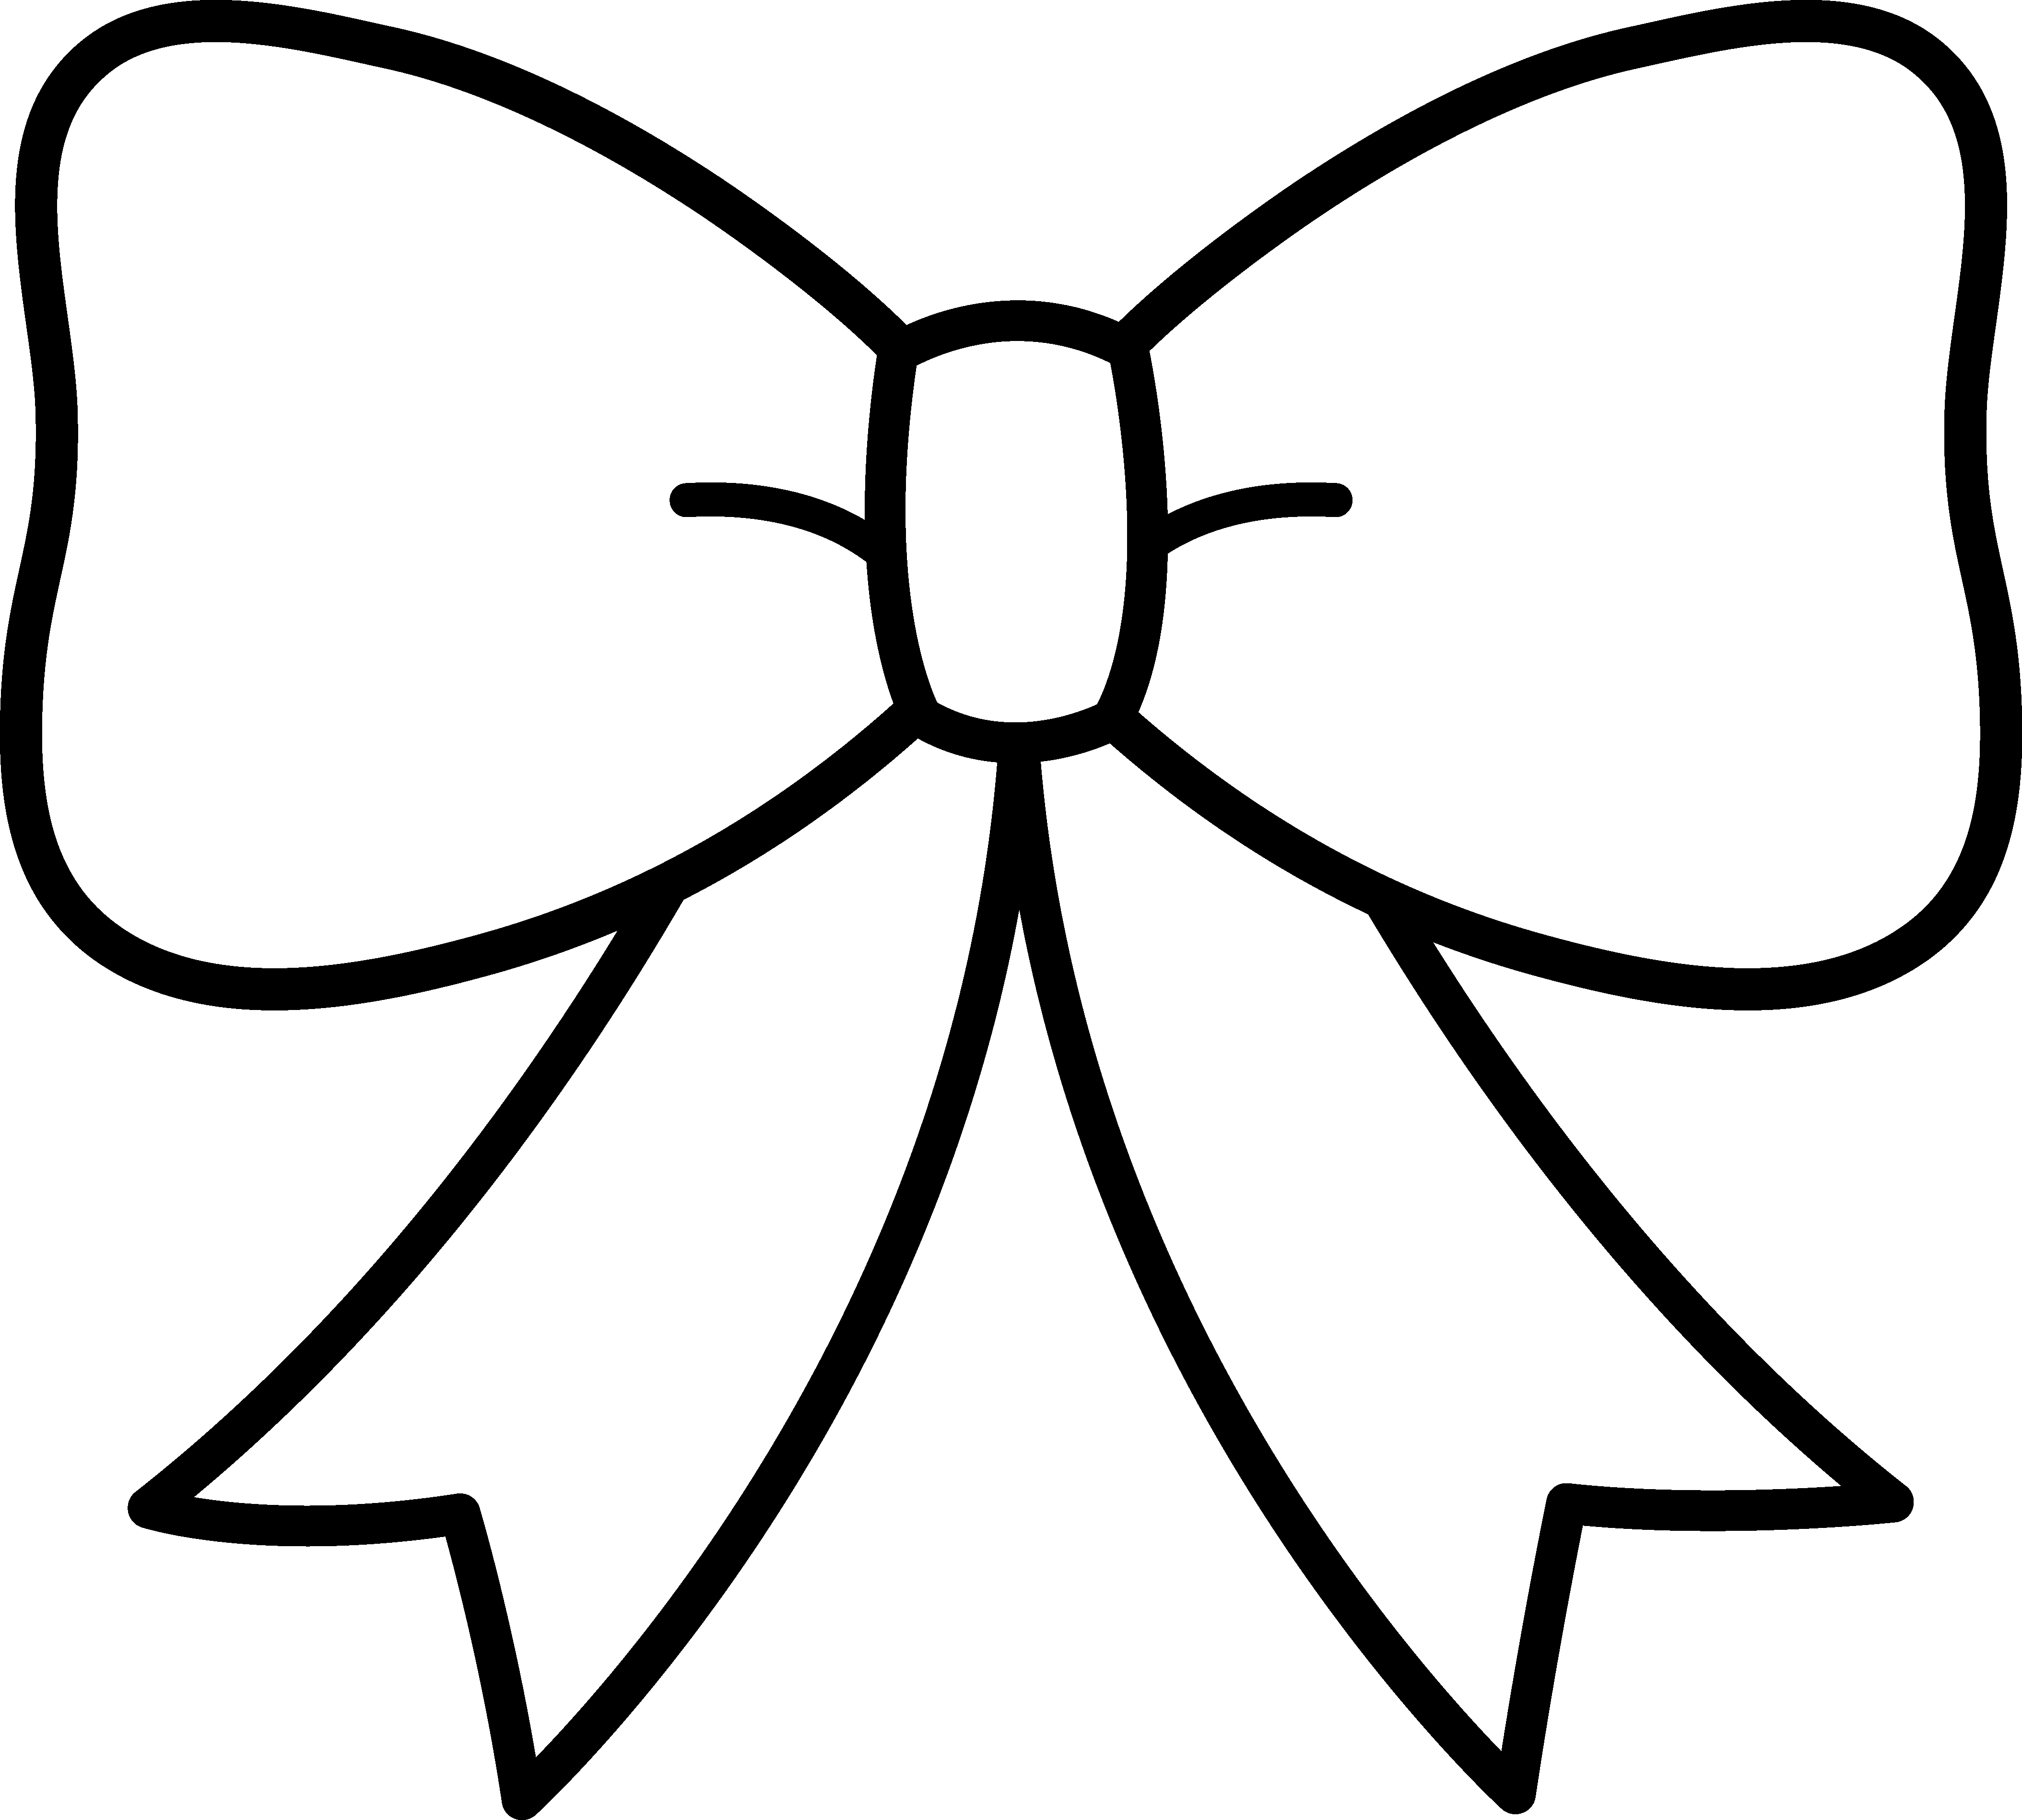 4216x3795 Unique Cheer Bow Clipart Collection